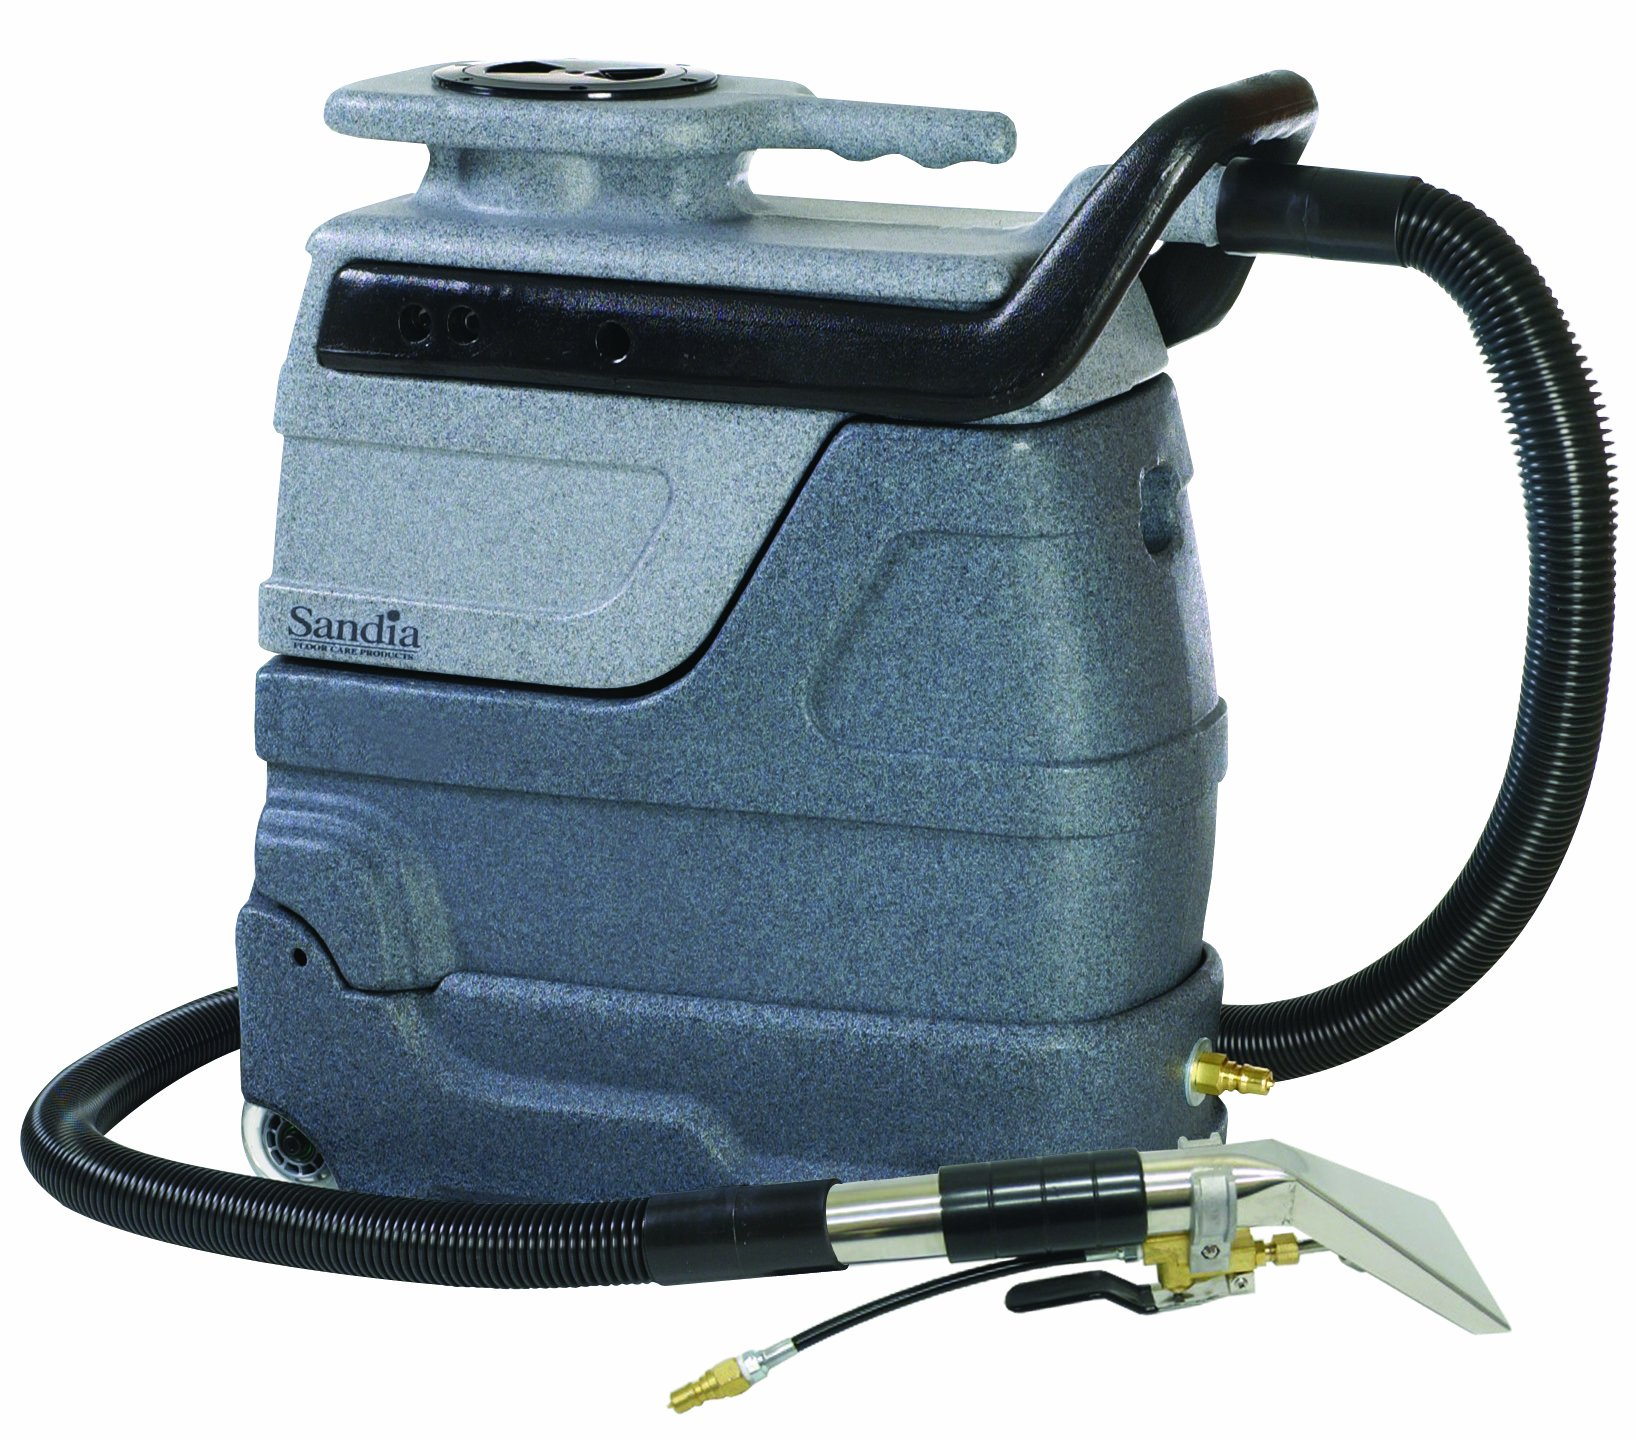 Sandia 50-4000 Spot-Xtract 3 Gallon Commercial Extractor with Heater Kit